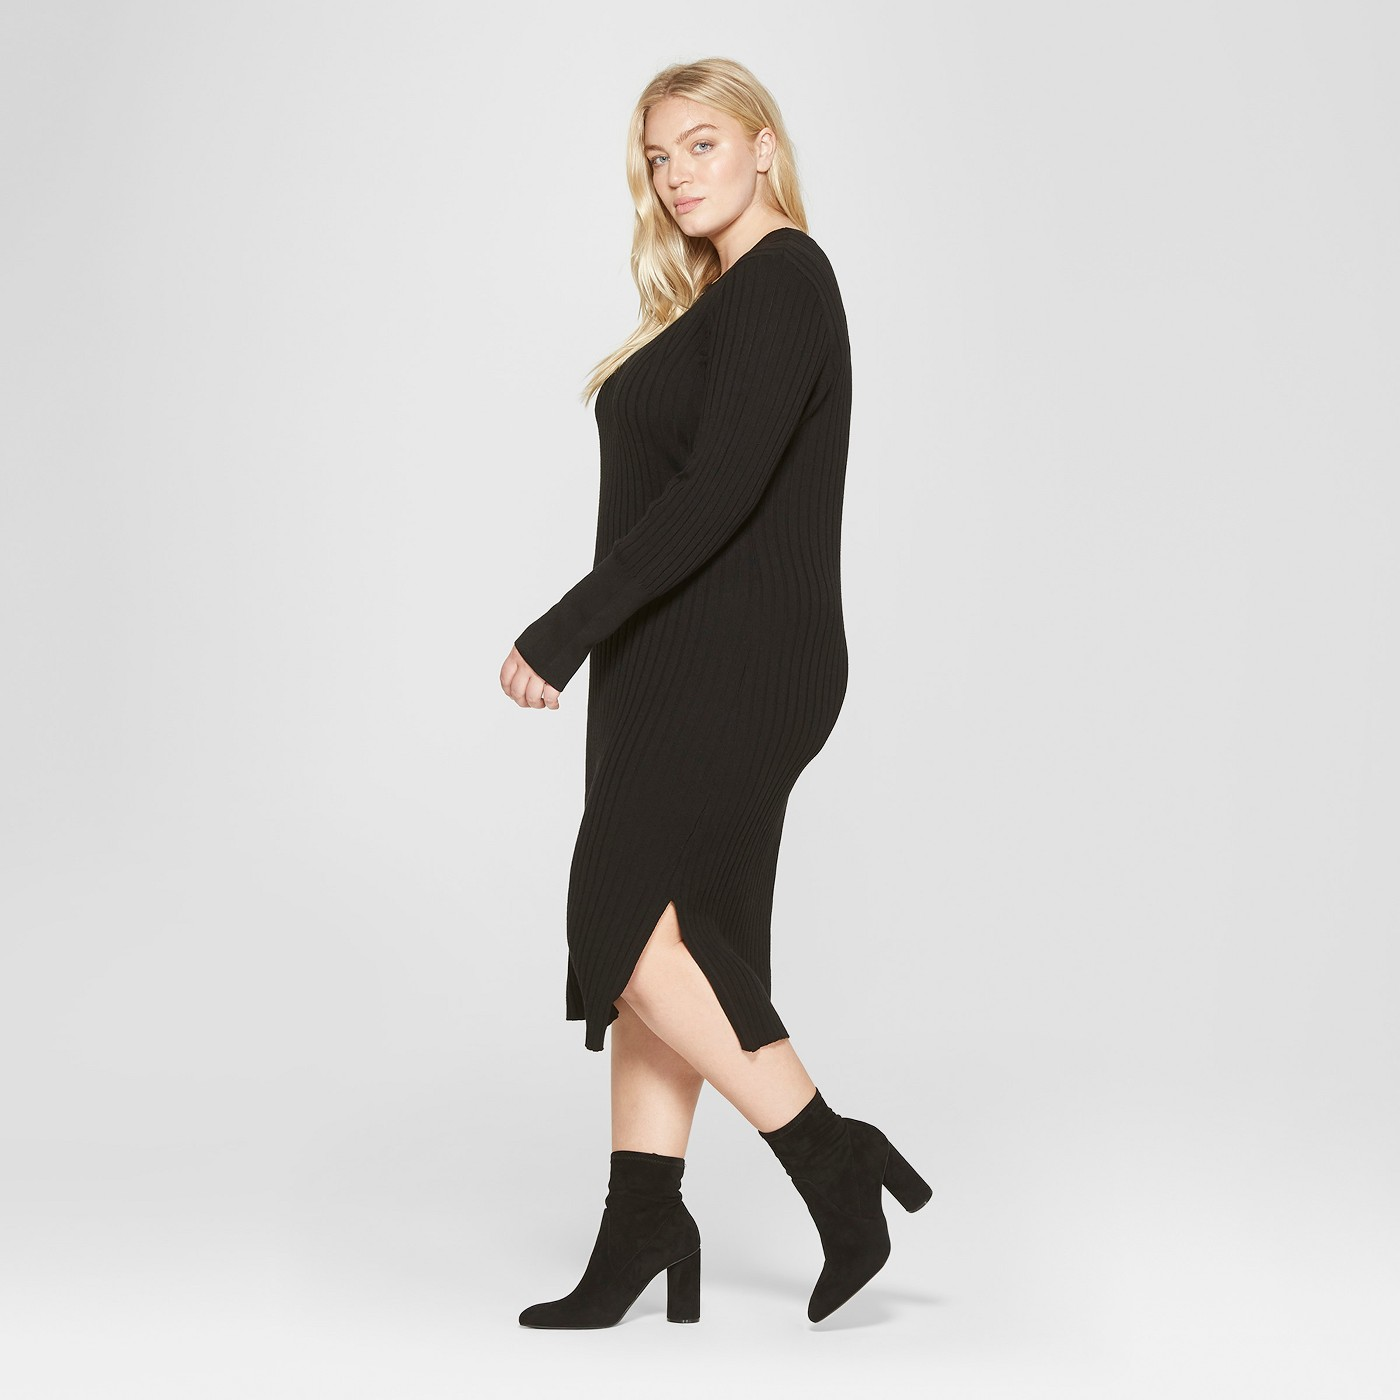 Best Plus Size Sweater Dresses For Women, Winter 2018